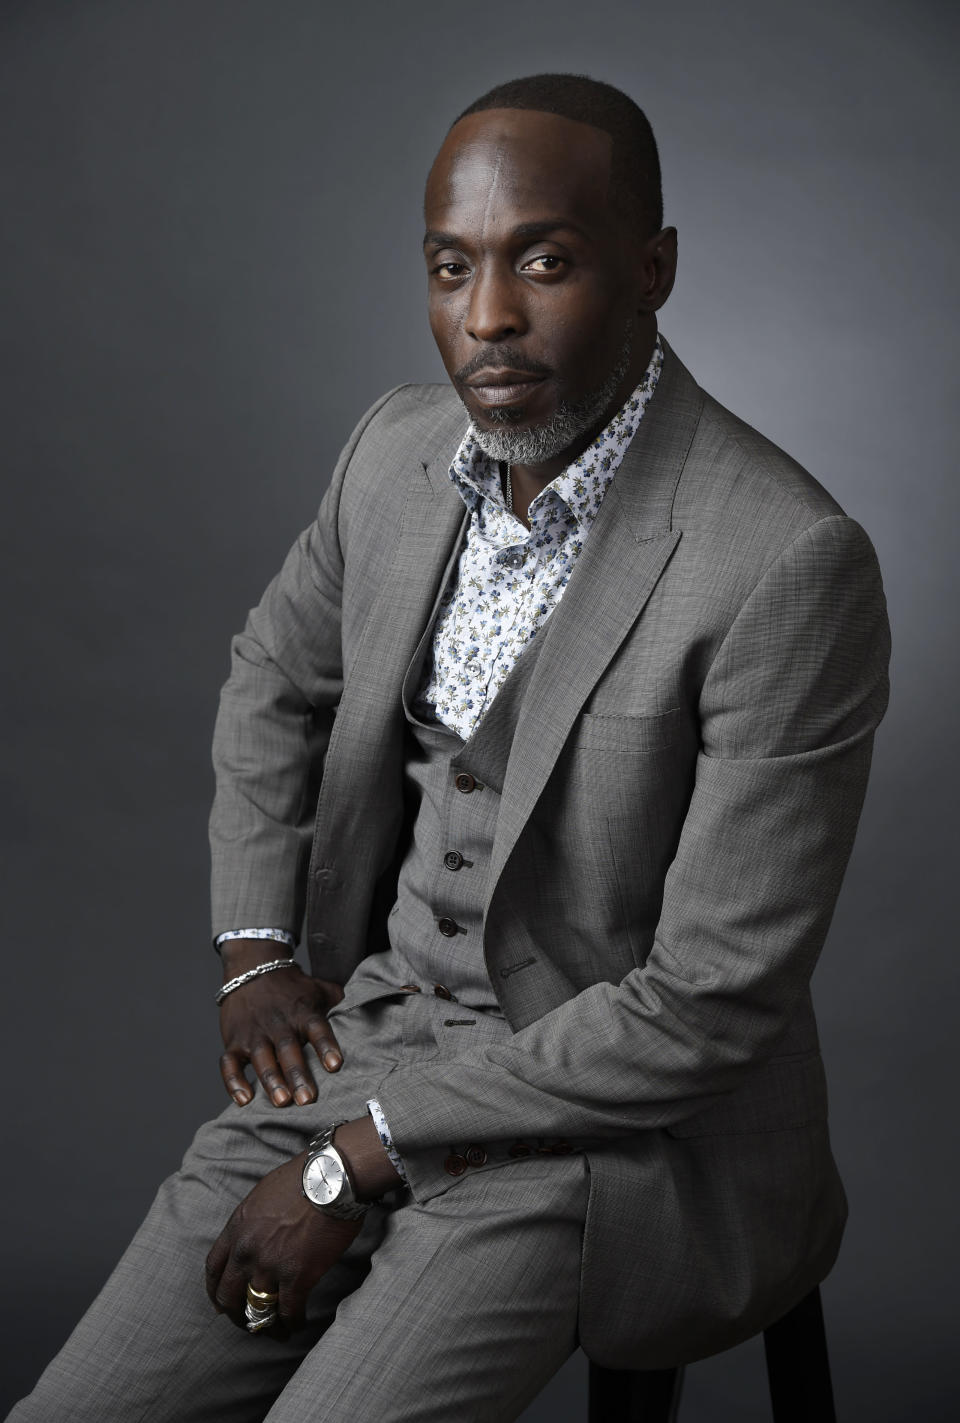 """FILE - In this Saturday, July 30, 2016, file photo, Michael Kenneth Williams, a cast member in the HBO series """"The Night Of,"""" poses for a portrait during the 2016 Television Critics Association Summer Press Tour at the Beverly Hilton in Beverly Hills, Calif. Williams, who played the beloved character Omar Little on """"The Wire,"""" has died. New York City police say Williams was found dead Monday, Sept. 6, 2021, at his apartment in Brooklyn. He was 54. (Photo by Chris Pizzello/Invision/AP, File)"""